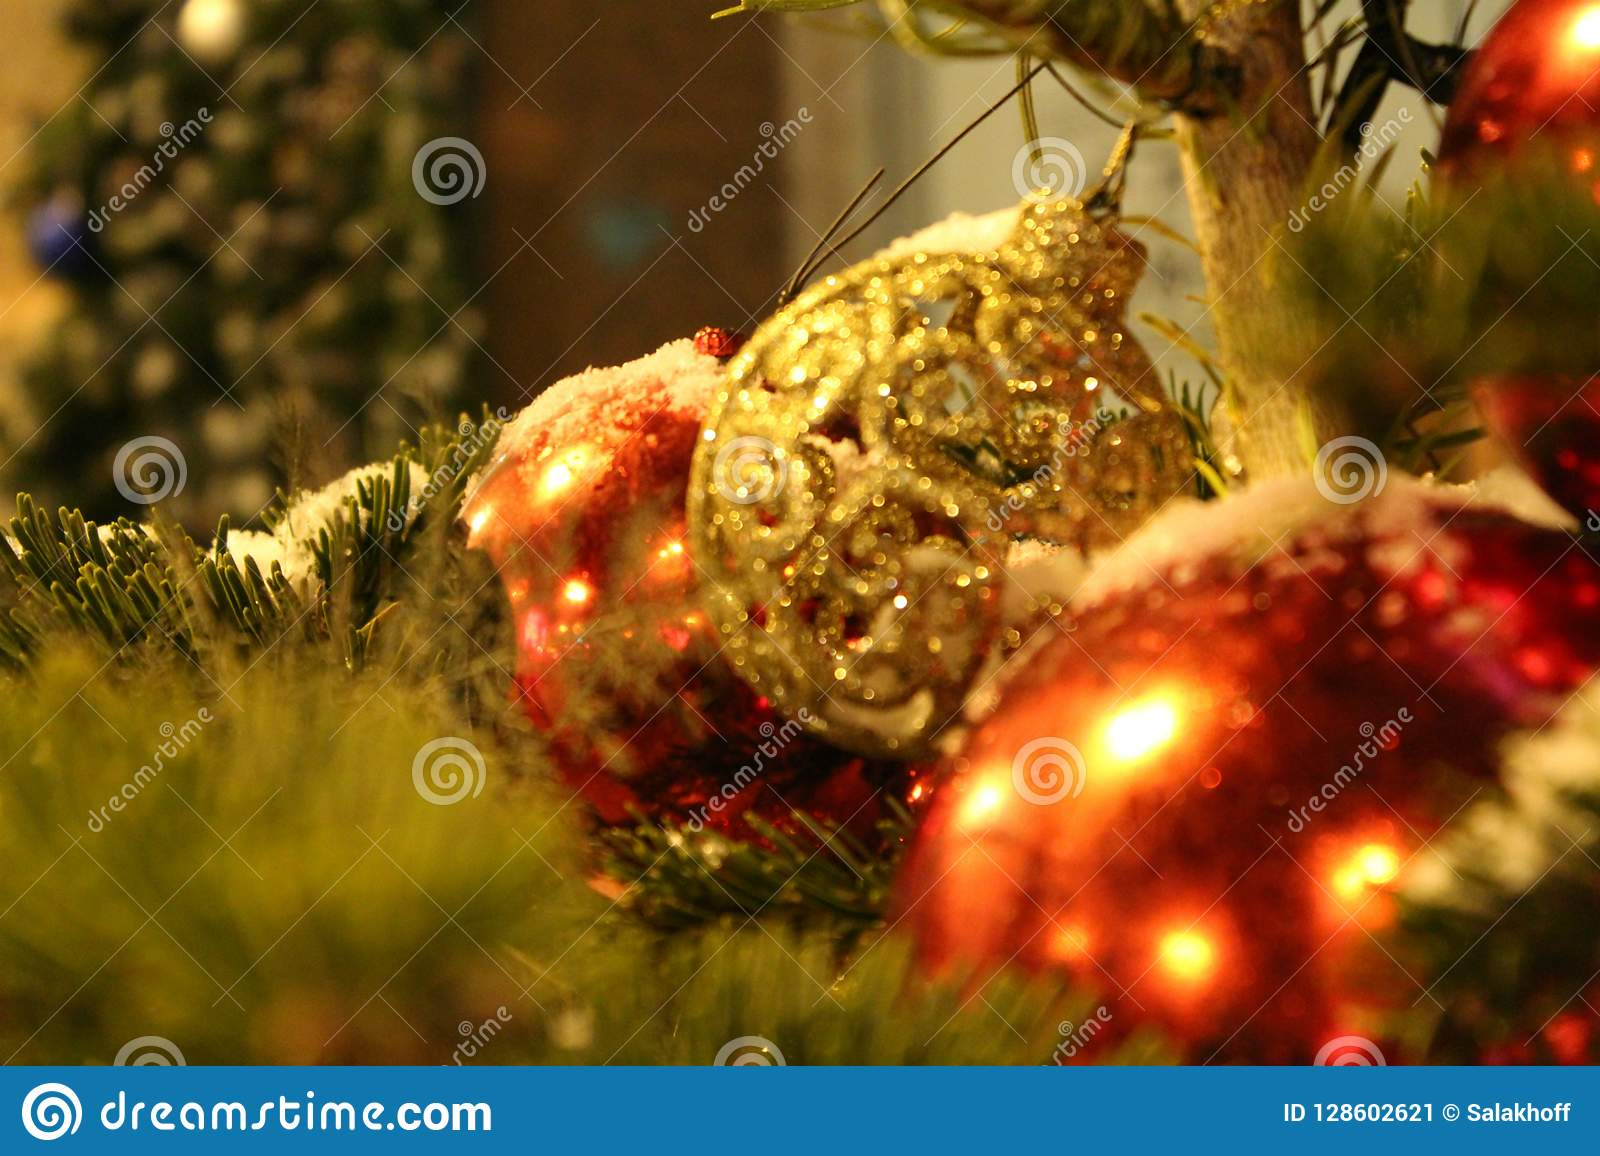 Christmas Decorations On The Christmas Tree In Red And Gold Colors